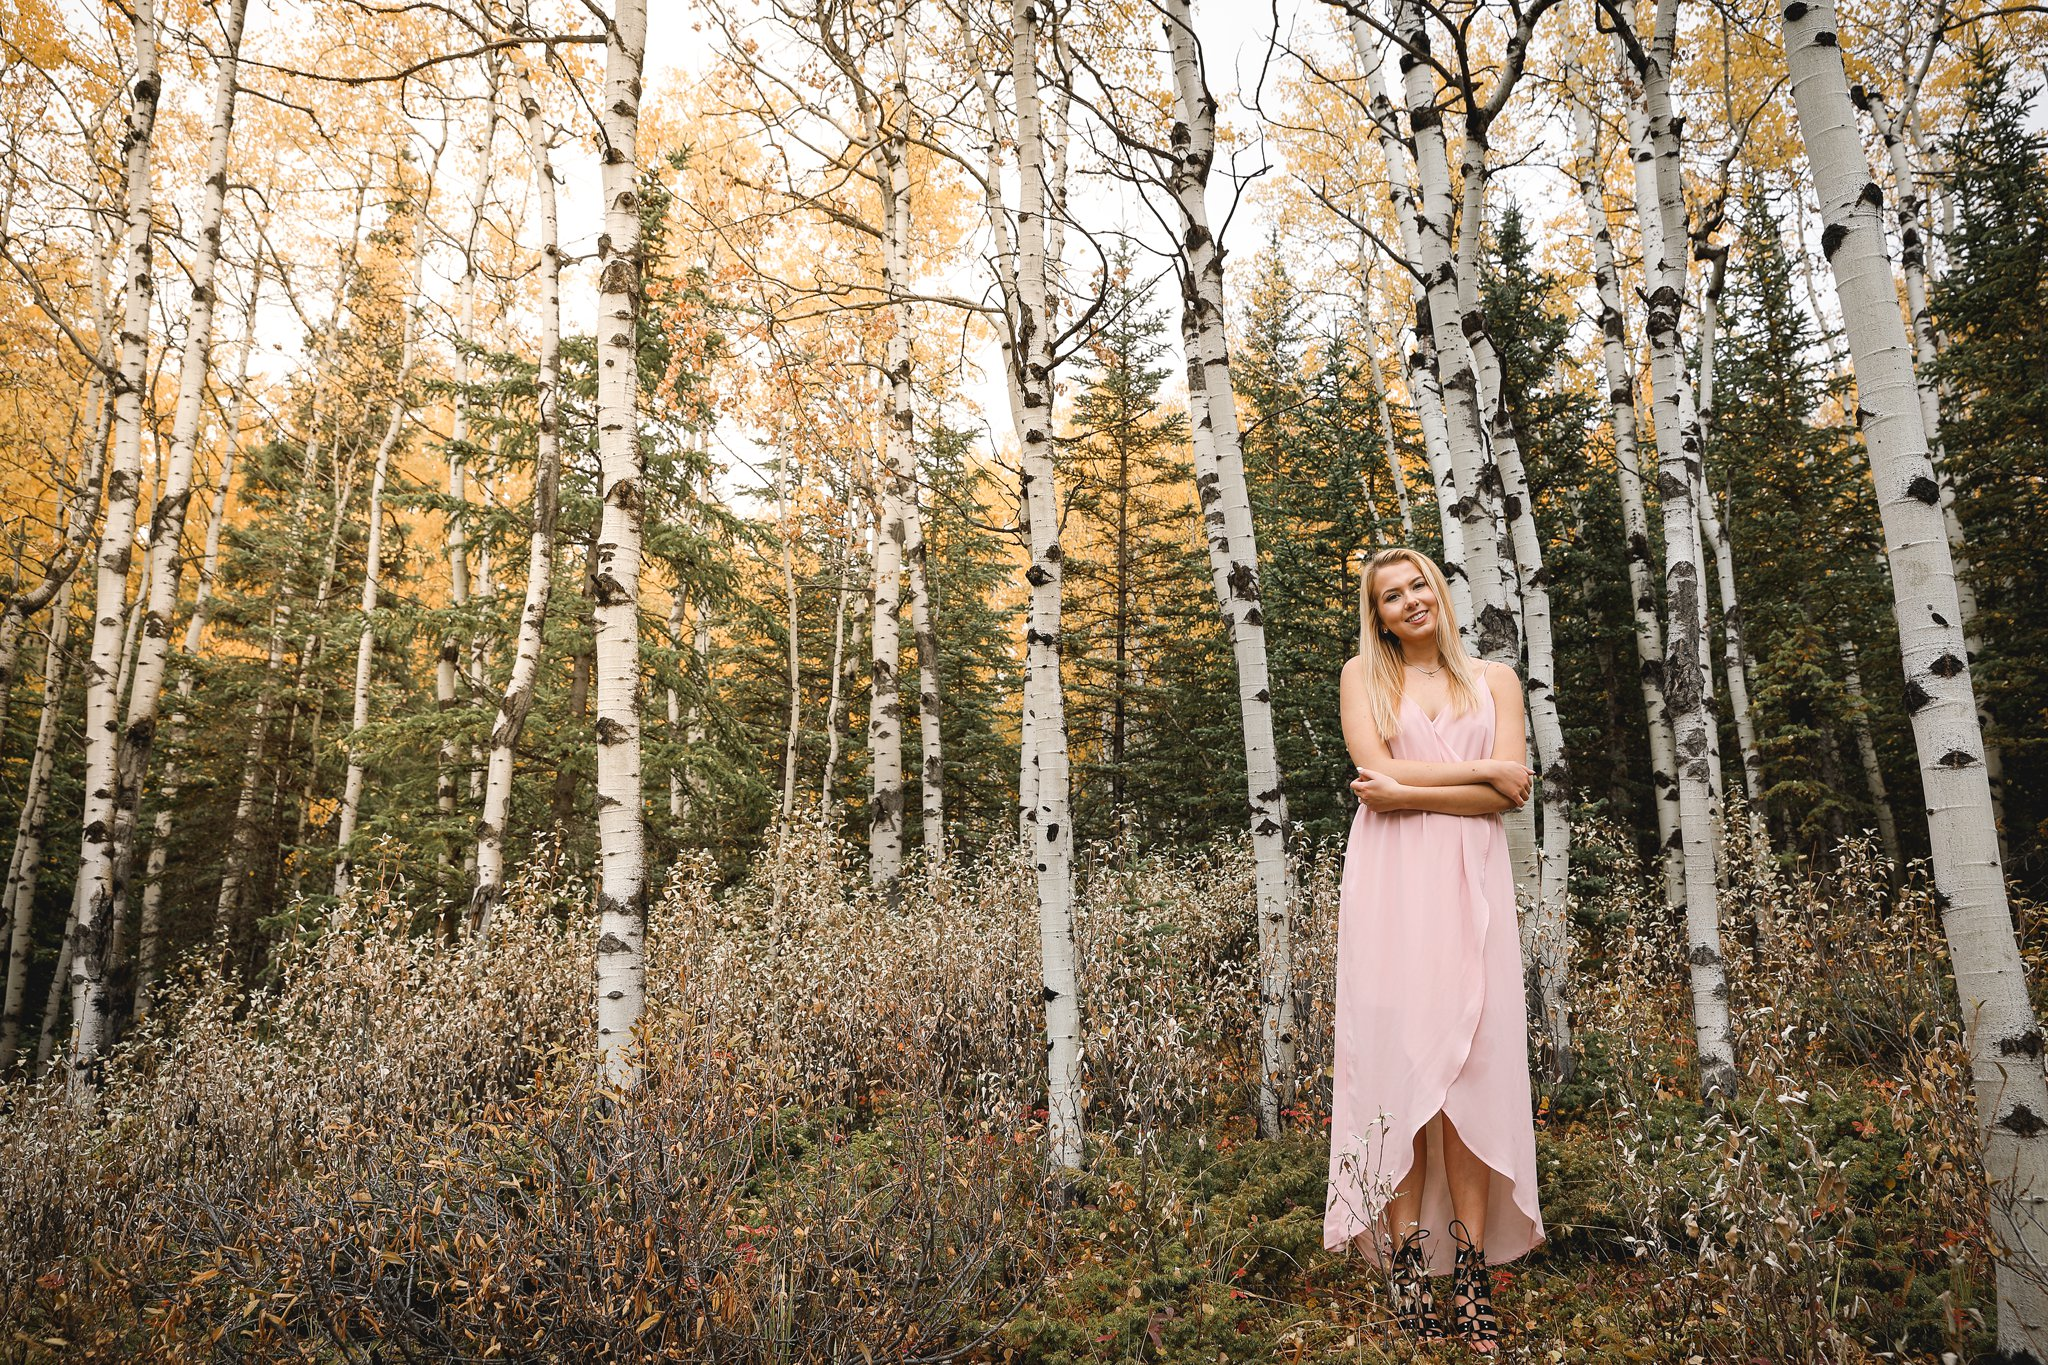 AshleyDaphnePhotography Calgary Photographer Wedding Family Senior Portraits Rocky Mountains Sheep River Falls Autumn Fall_0044.jpg